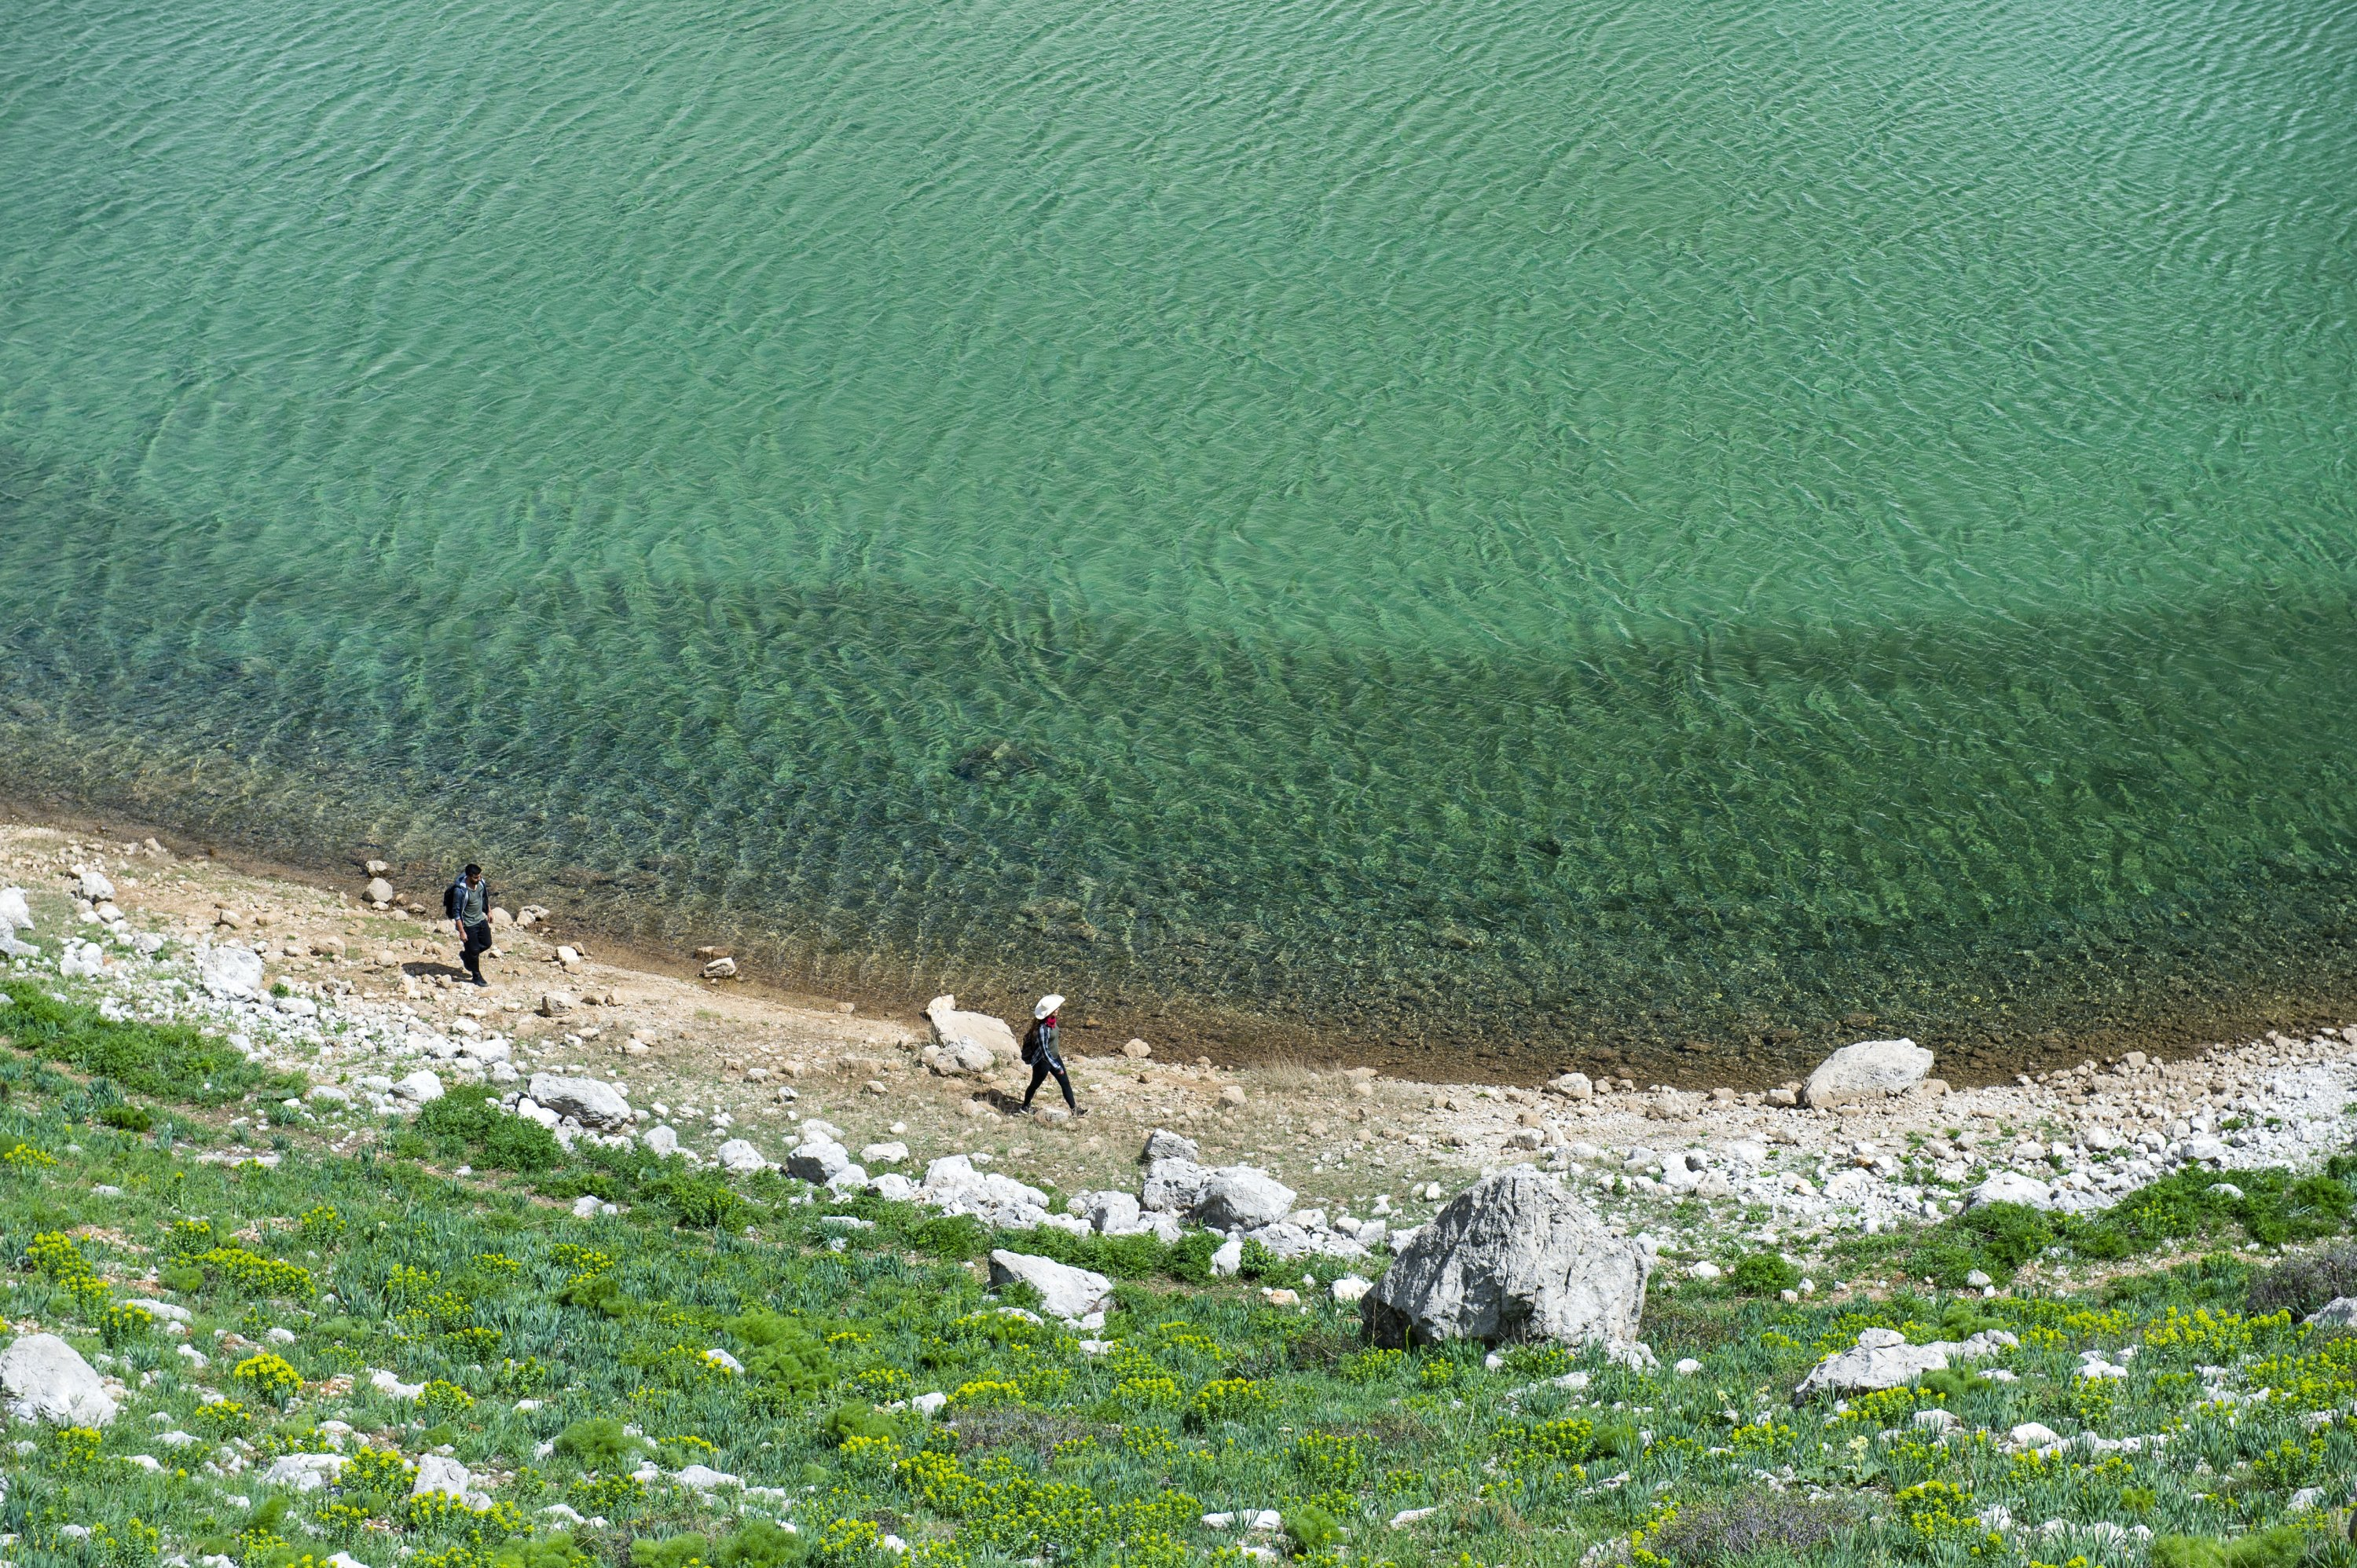 The glacial lakes formed by melting snow in the Mercan Valley in eastern Turkey are a popular destination for camping, photography and trekking enthusiasts. (AA Photo)